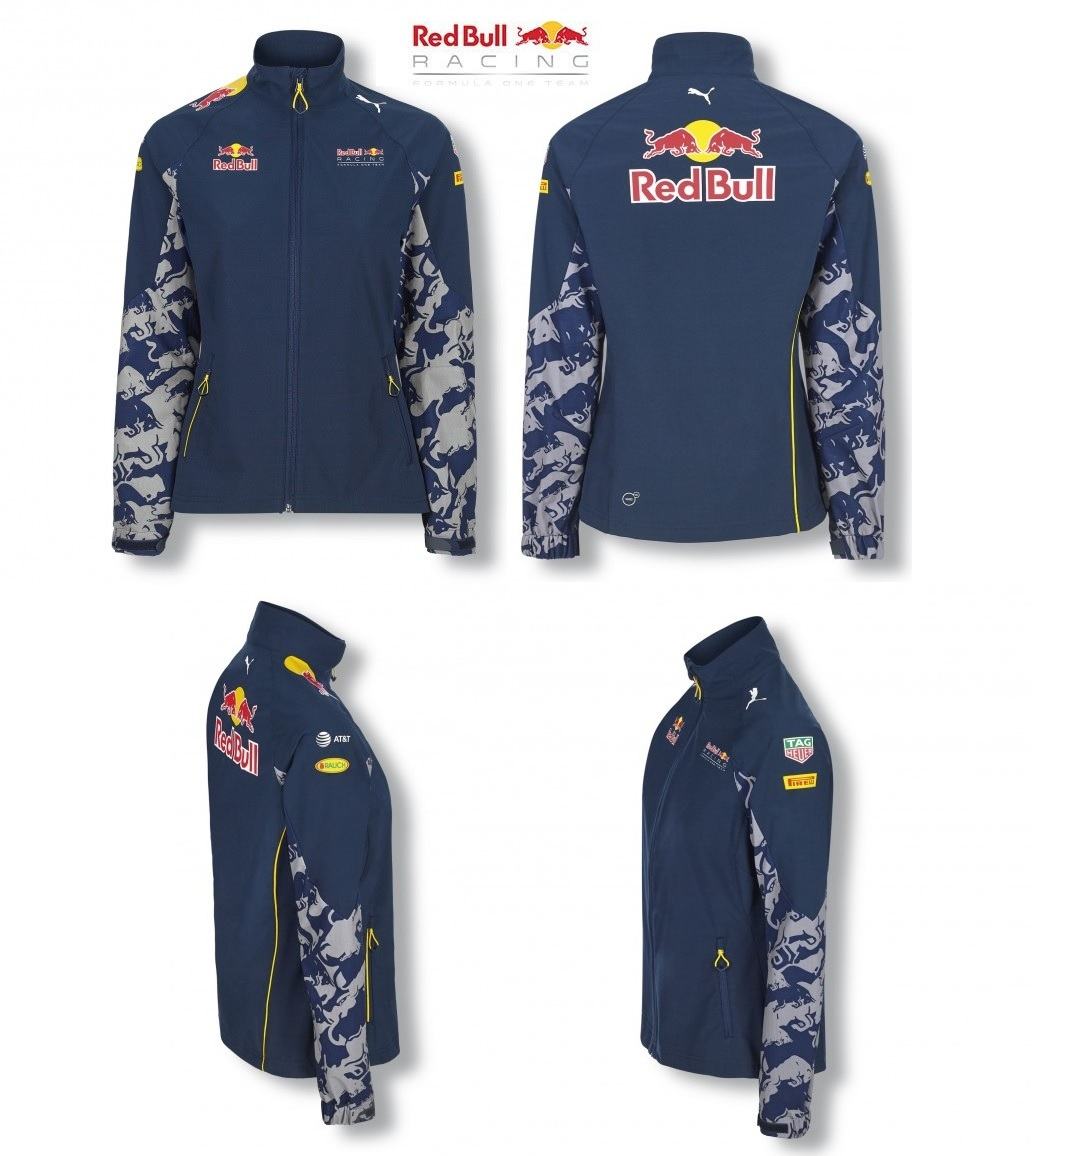 073763485b753 Details about Jacket Soft Shell Red Bull Racing Formula One Team womens  Ladies PUMA F1 US